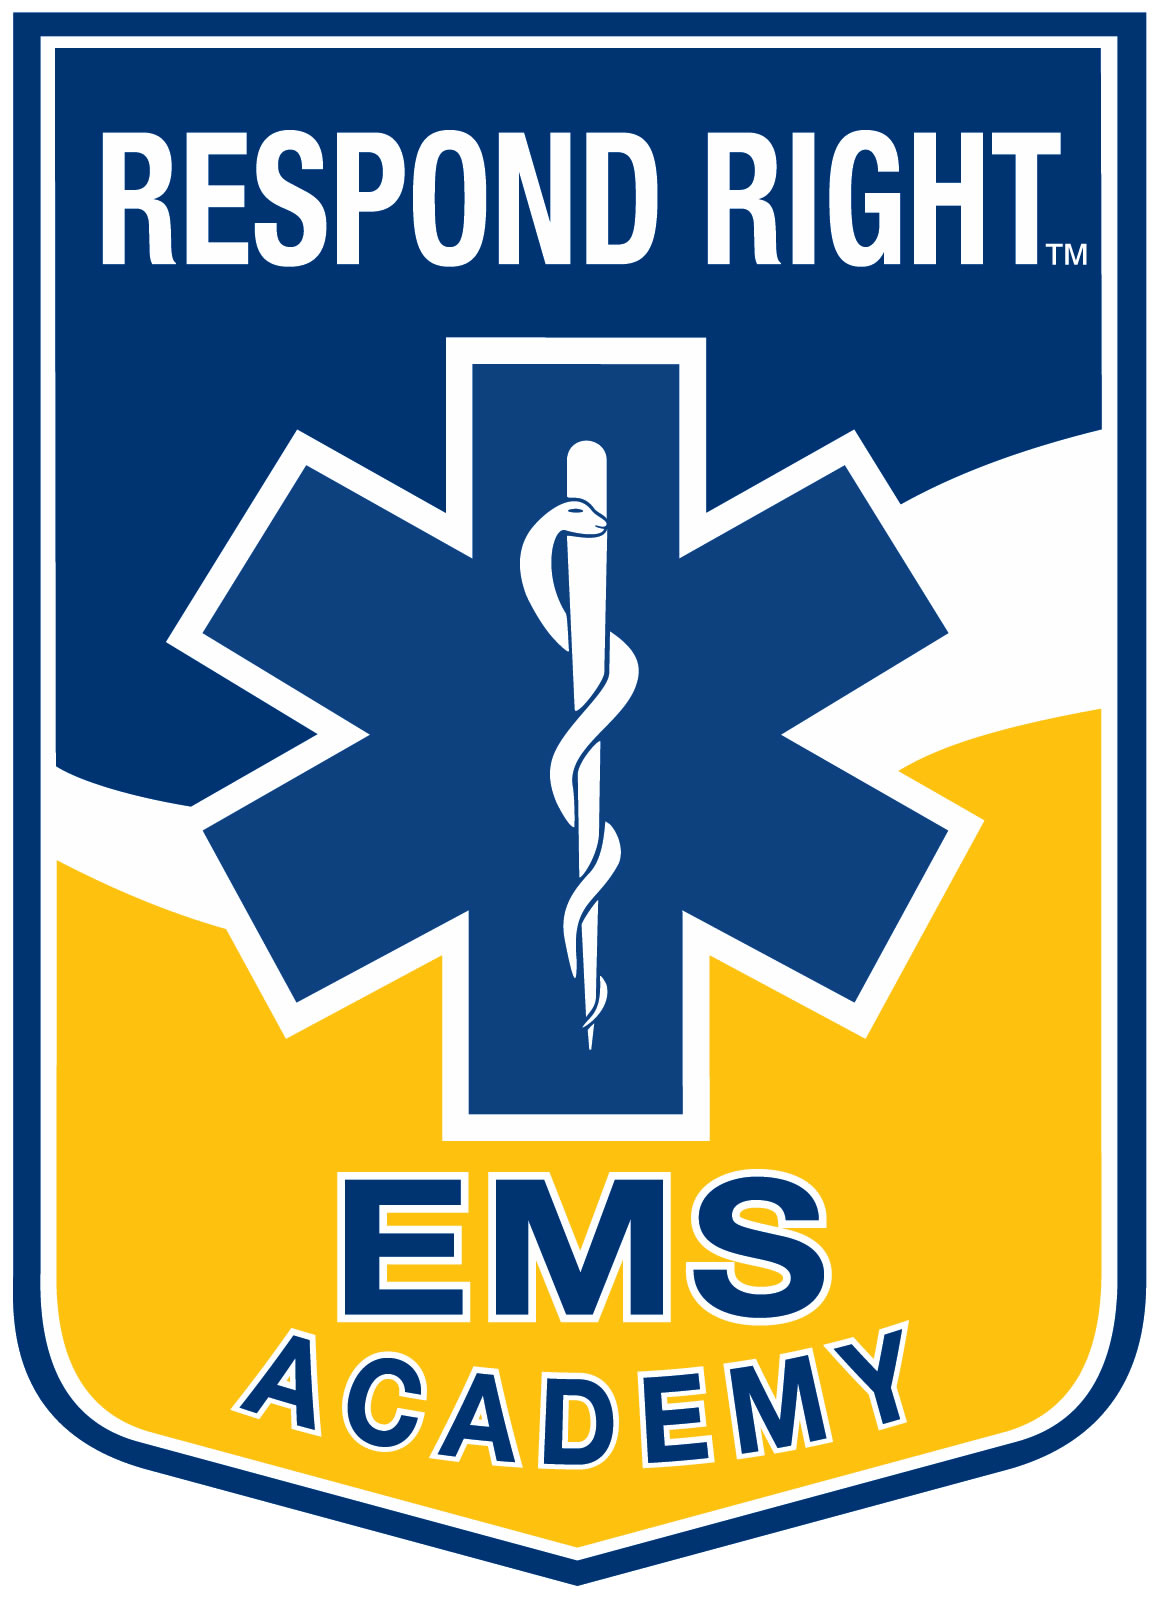 AHA BLS Instructor Course by Respond Right EMS Academy in ...